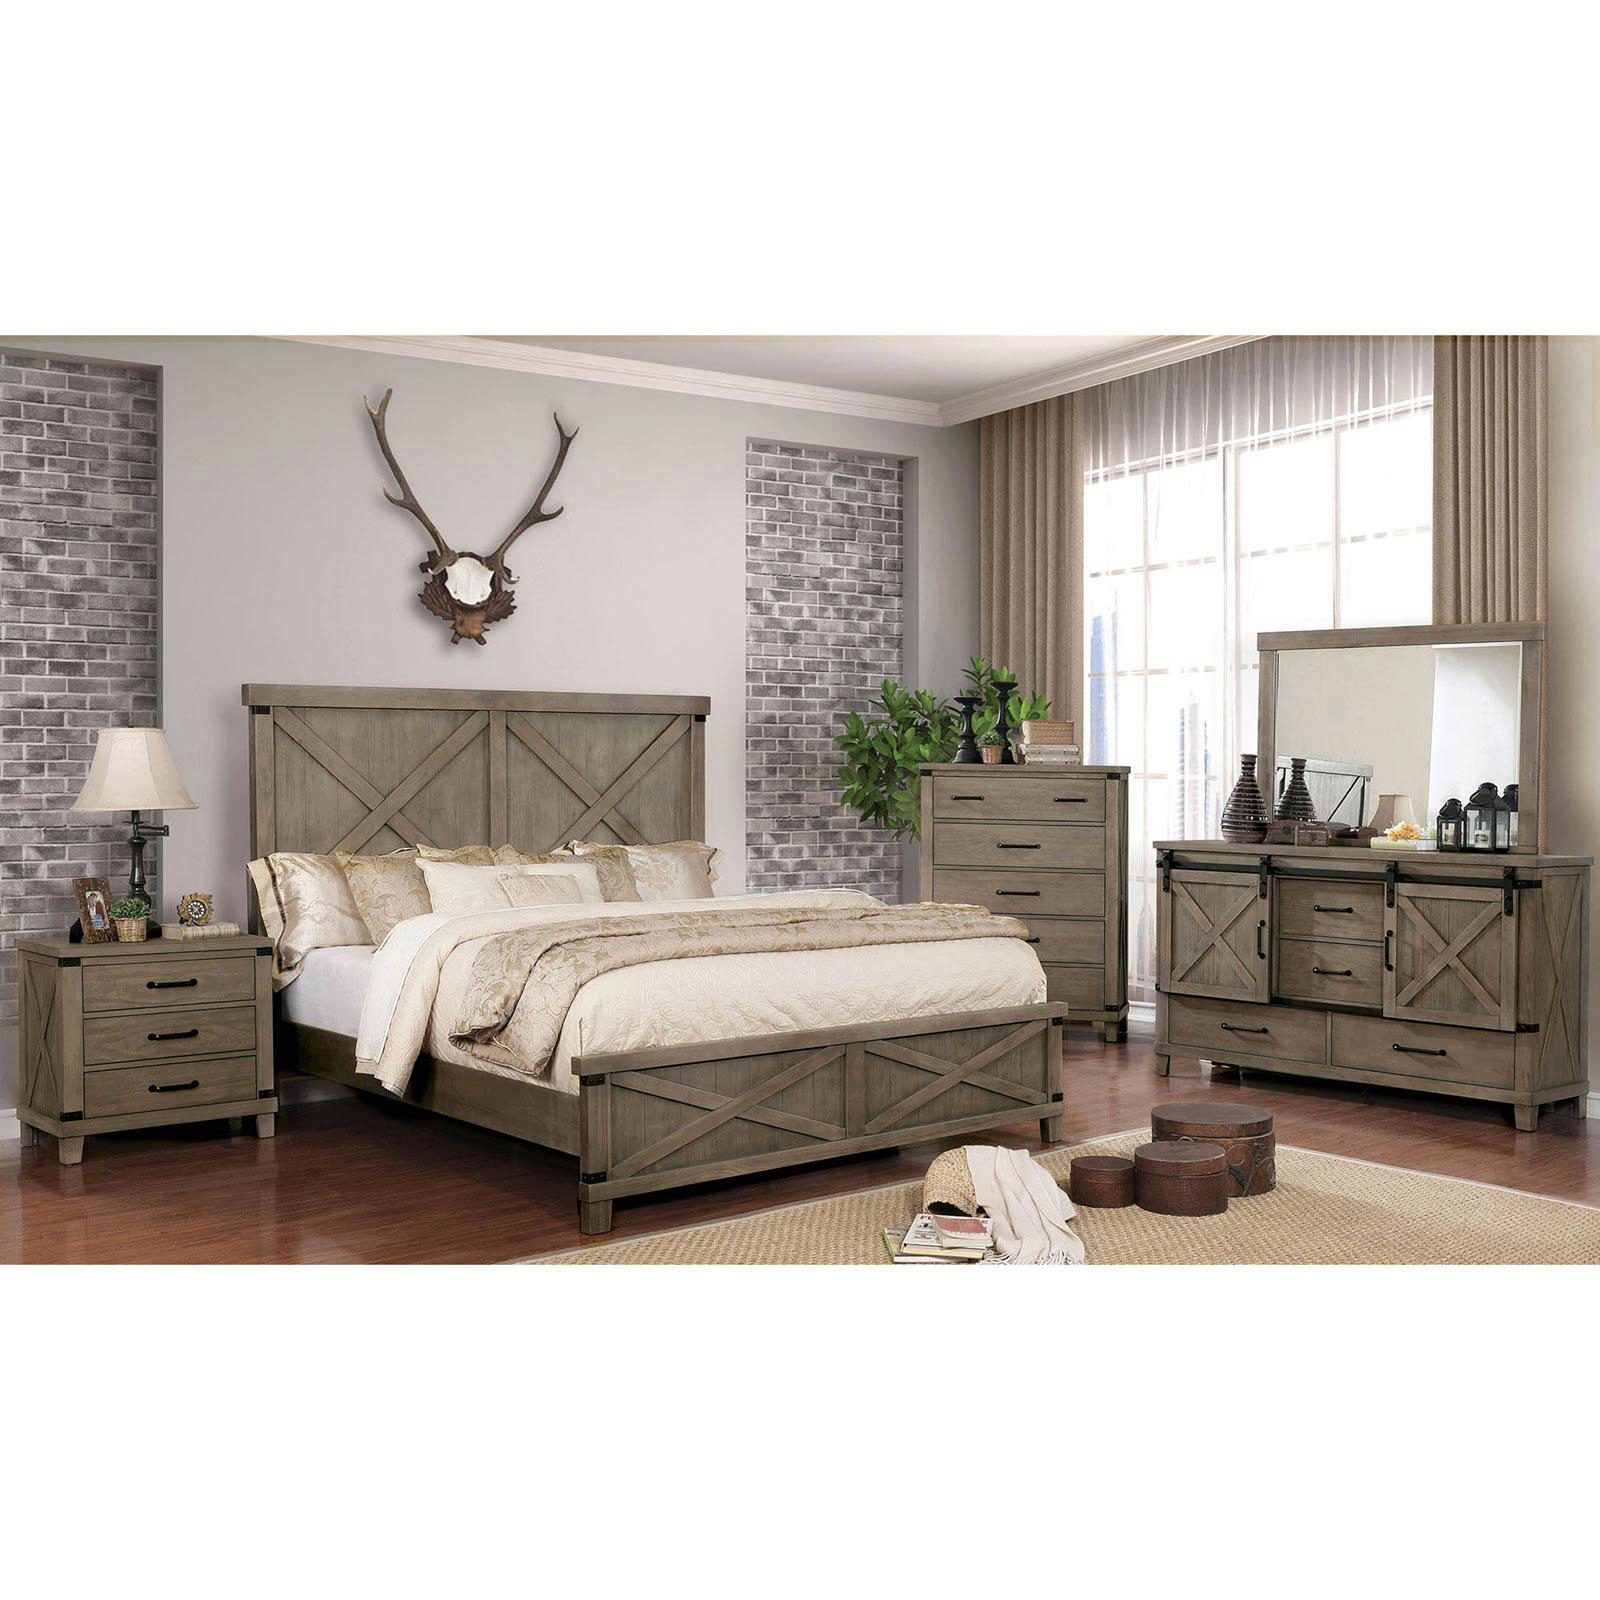 rustic wood king bedroom set 5 pcs in gray bianca by furniture of america